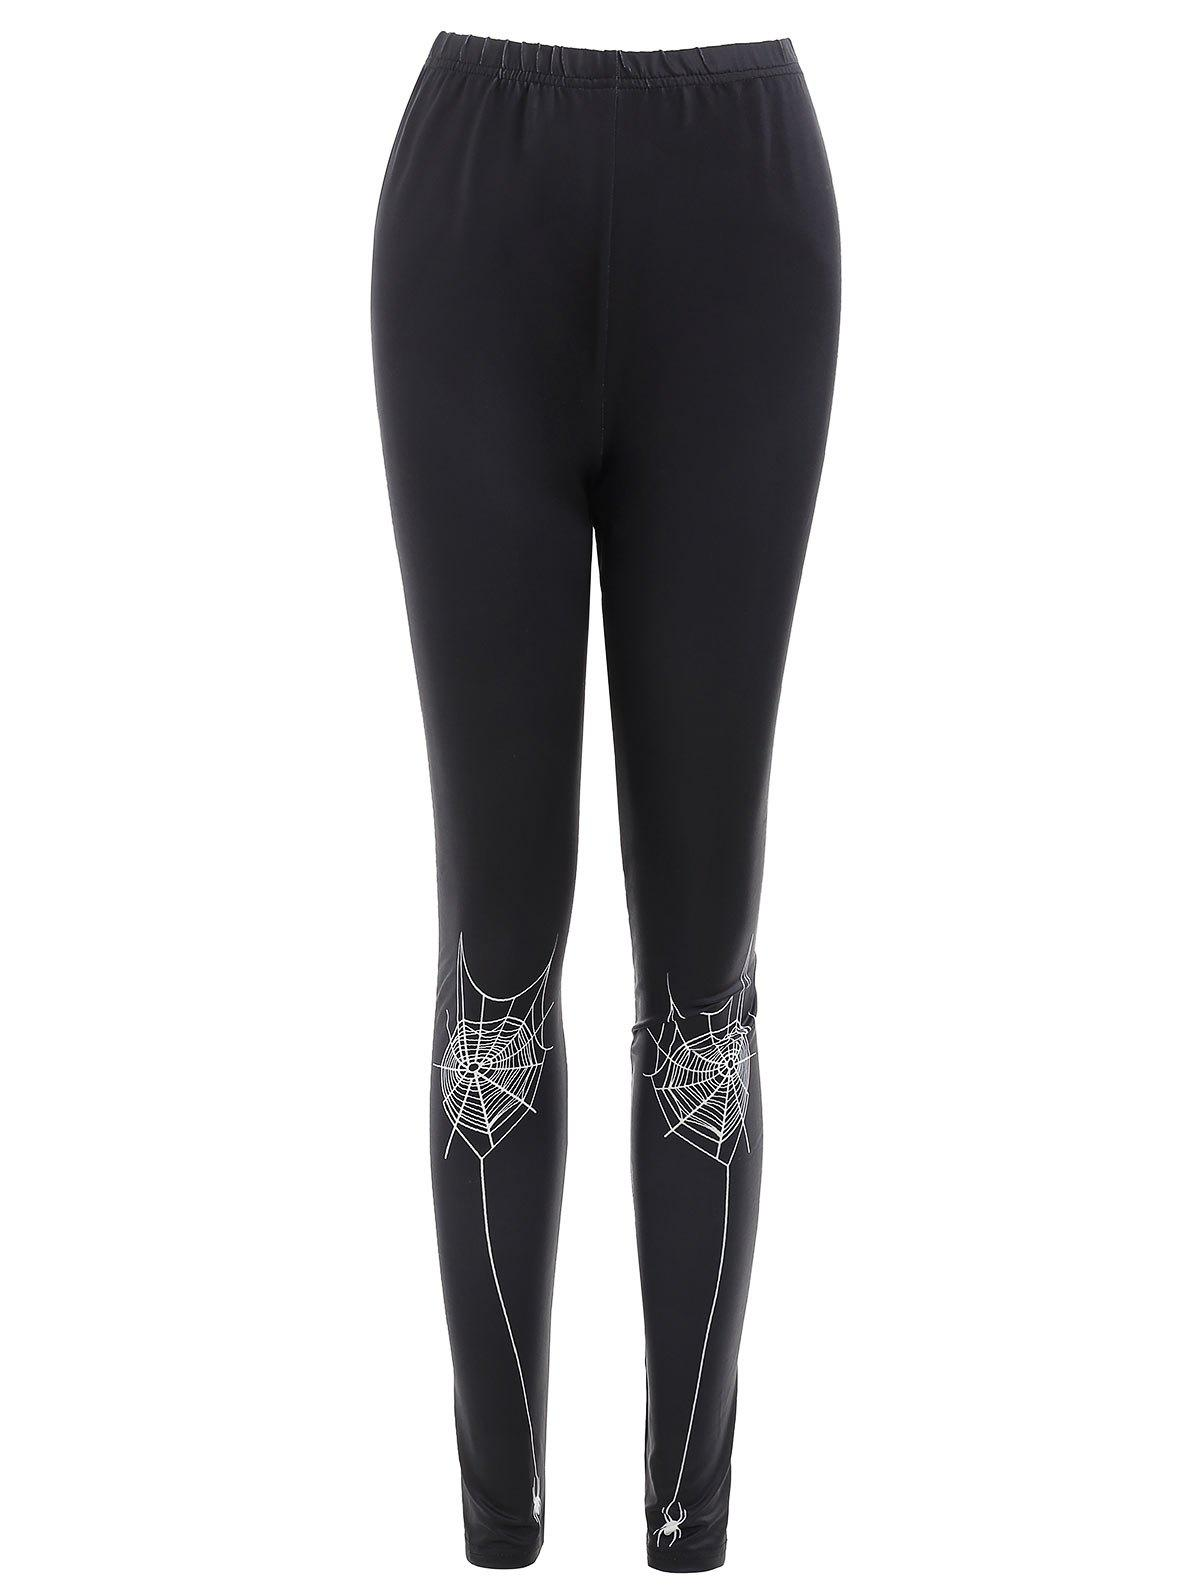 Spider Web Print Fitted Leggings - BLACK M